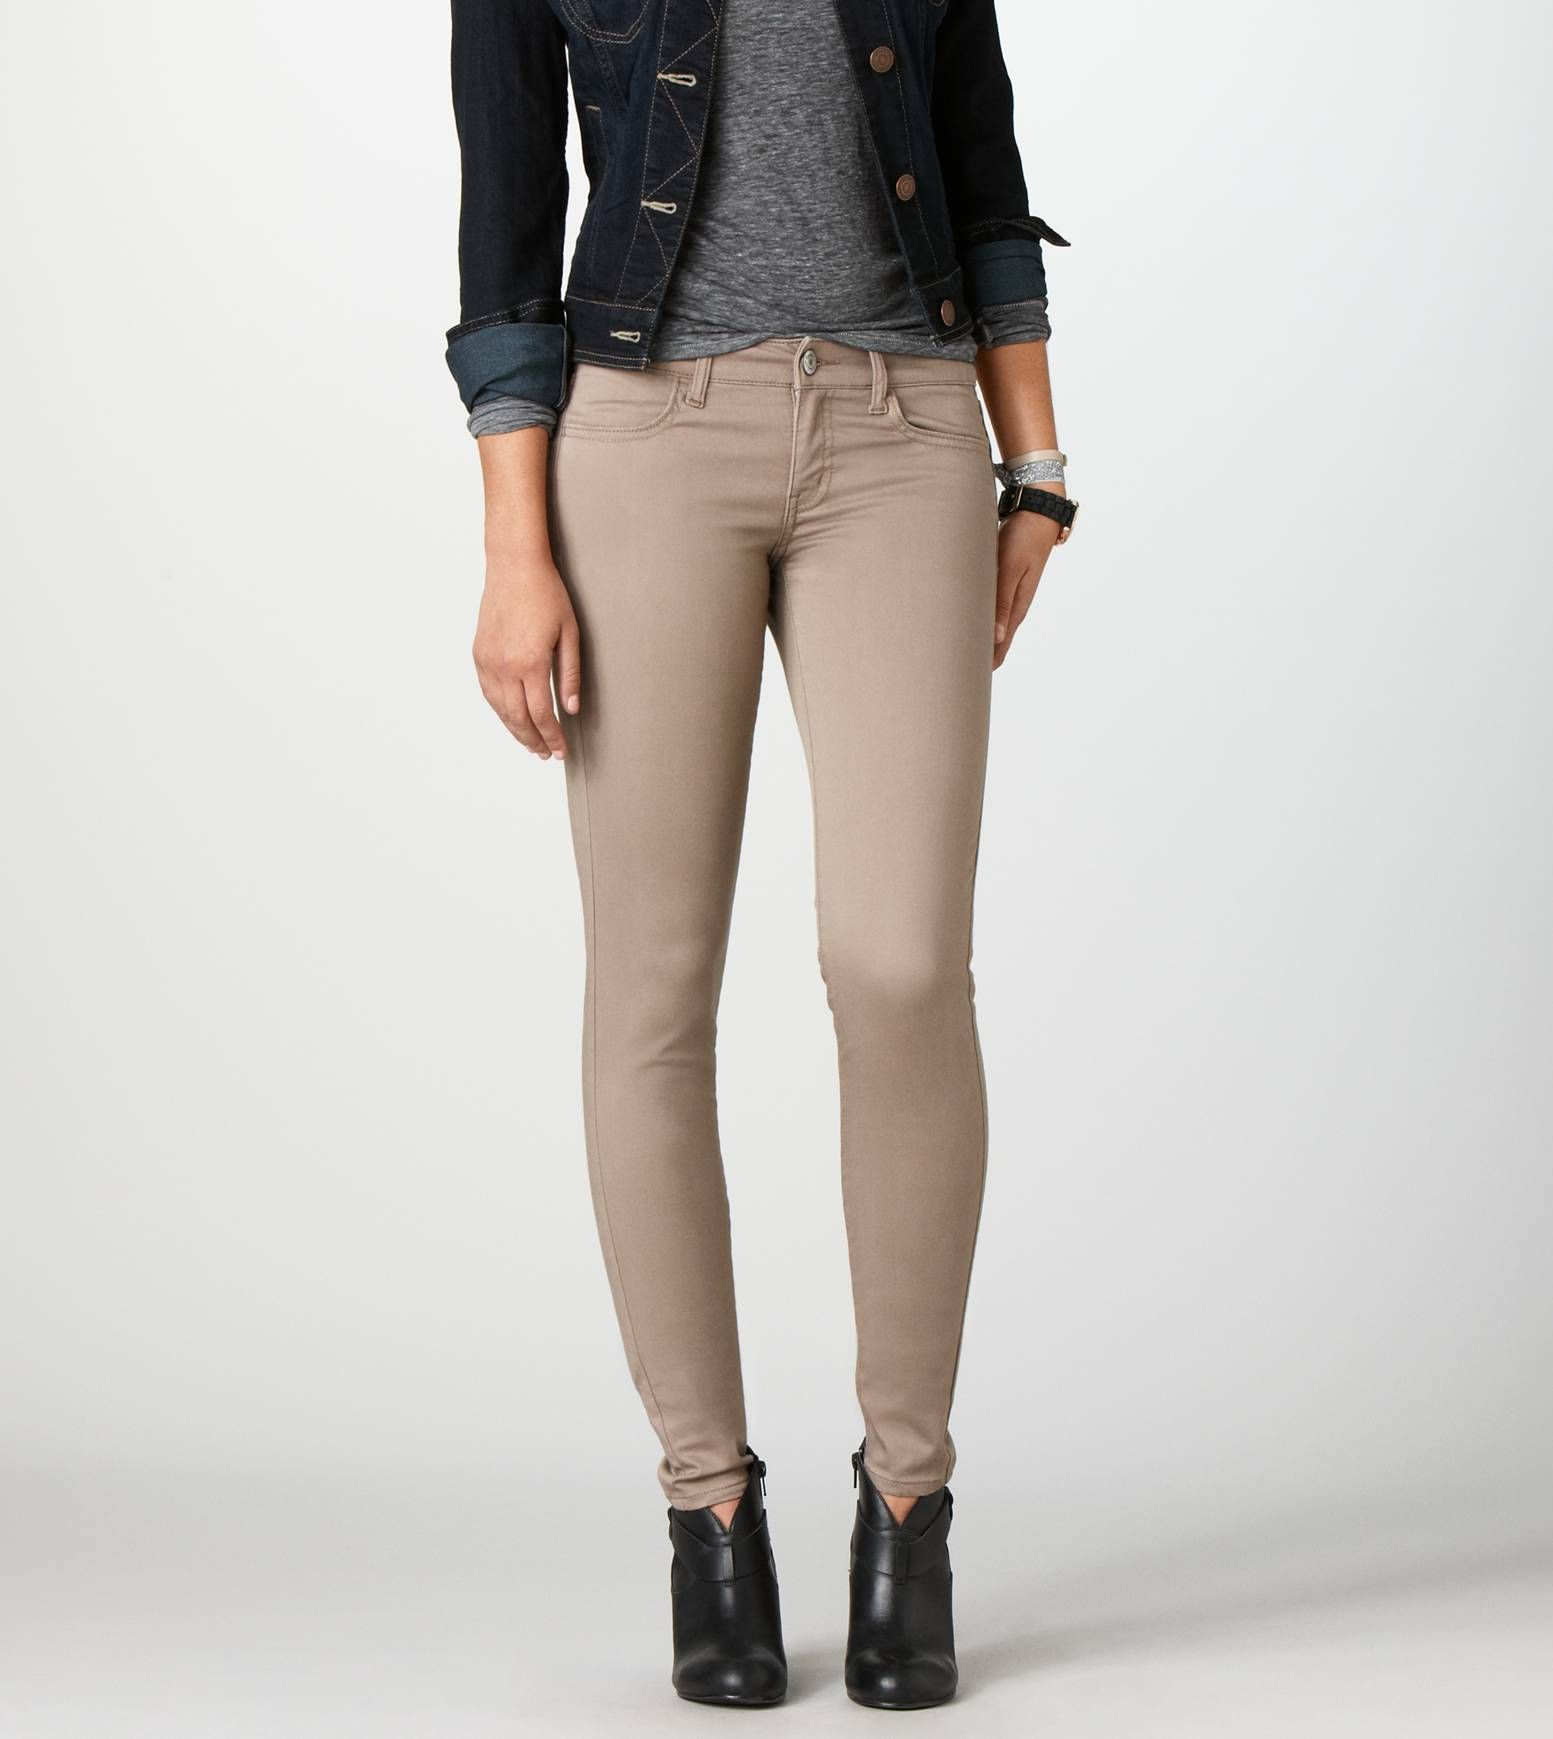 fc99b49a84227 Jegging in 2019 | Things. | Beige pants outfit, Tan pants outfit ...